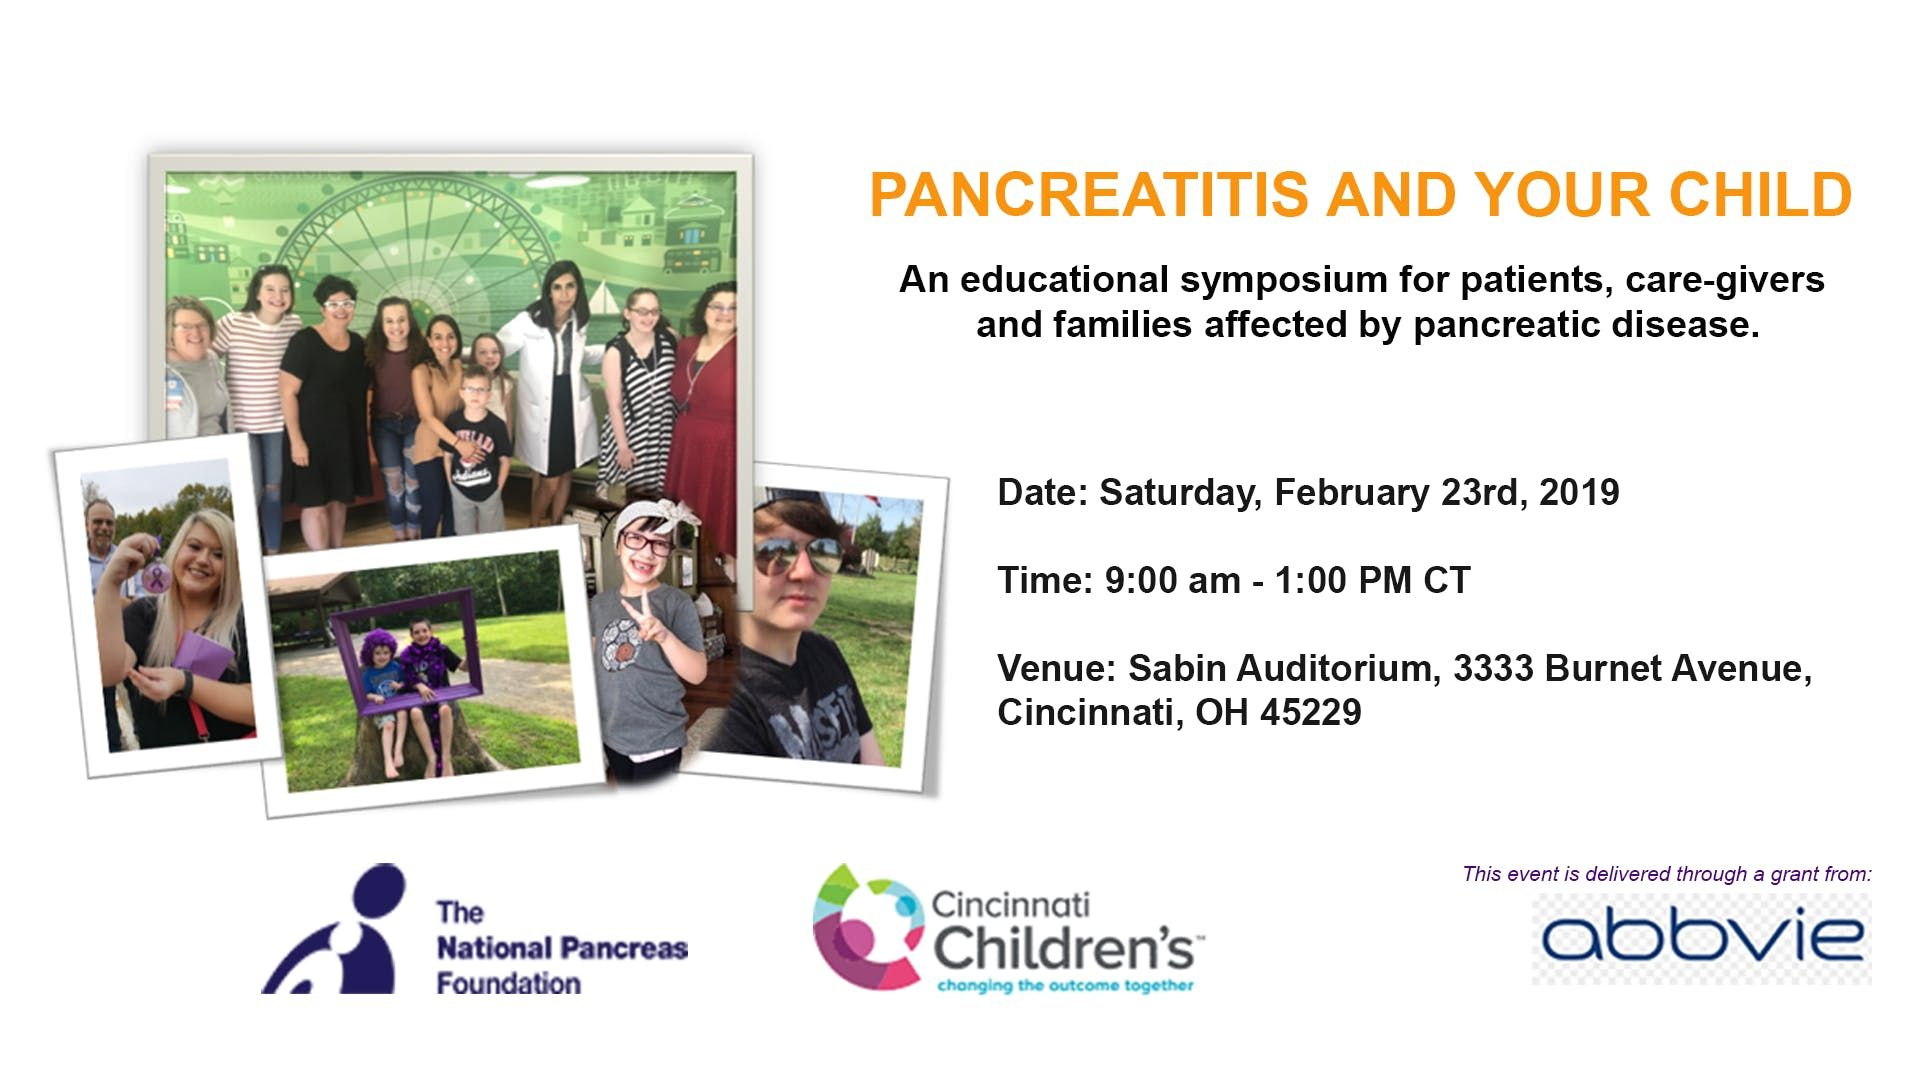 PANCREATITIS AND YOUR CHILD An educational symposium for patients care-givers  and families affected by pancreatic disease.